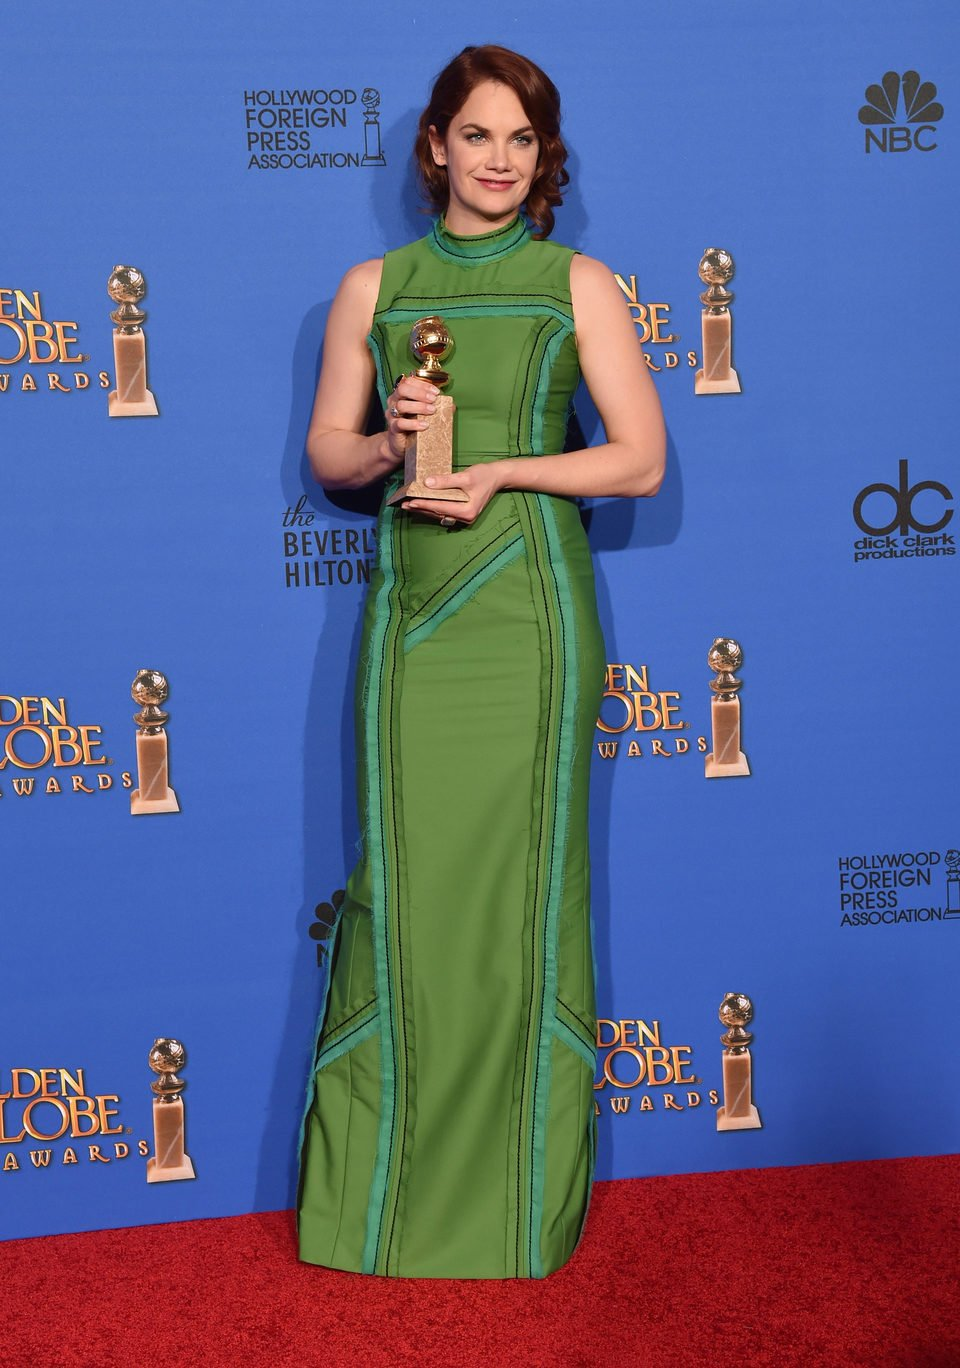 Ruth Wilson, winner of the Golden Globe 2015 for the best drama actress